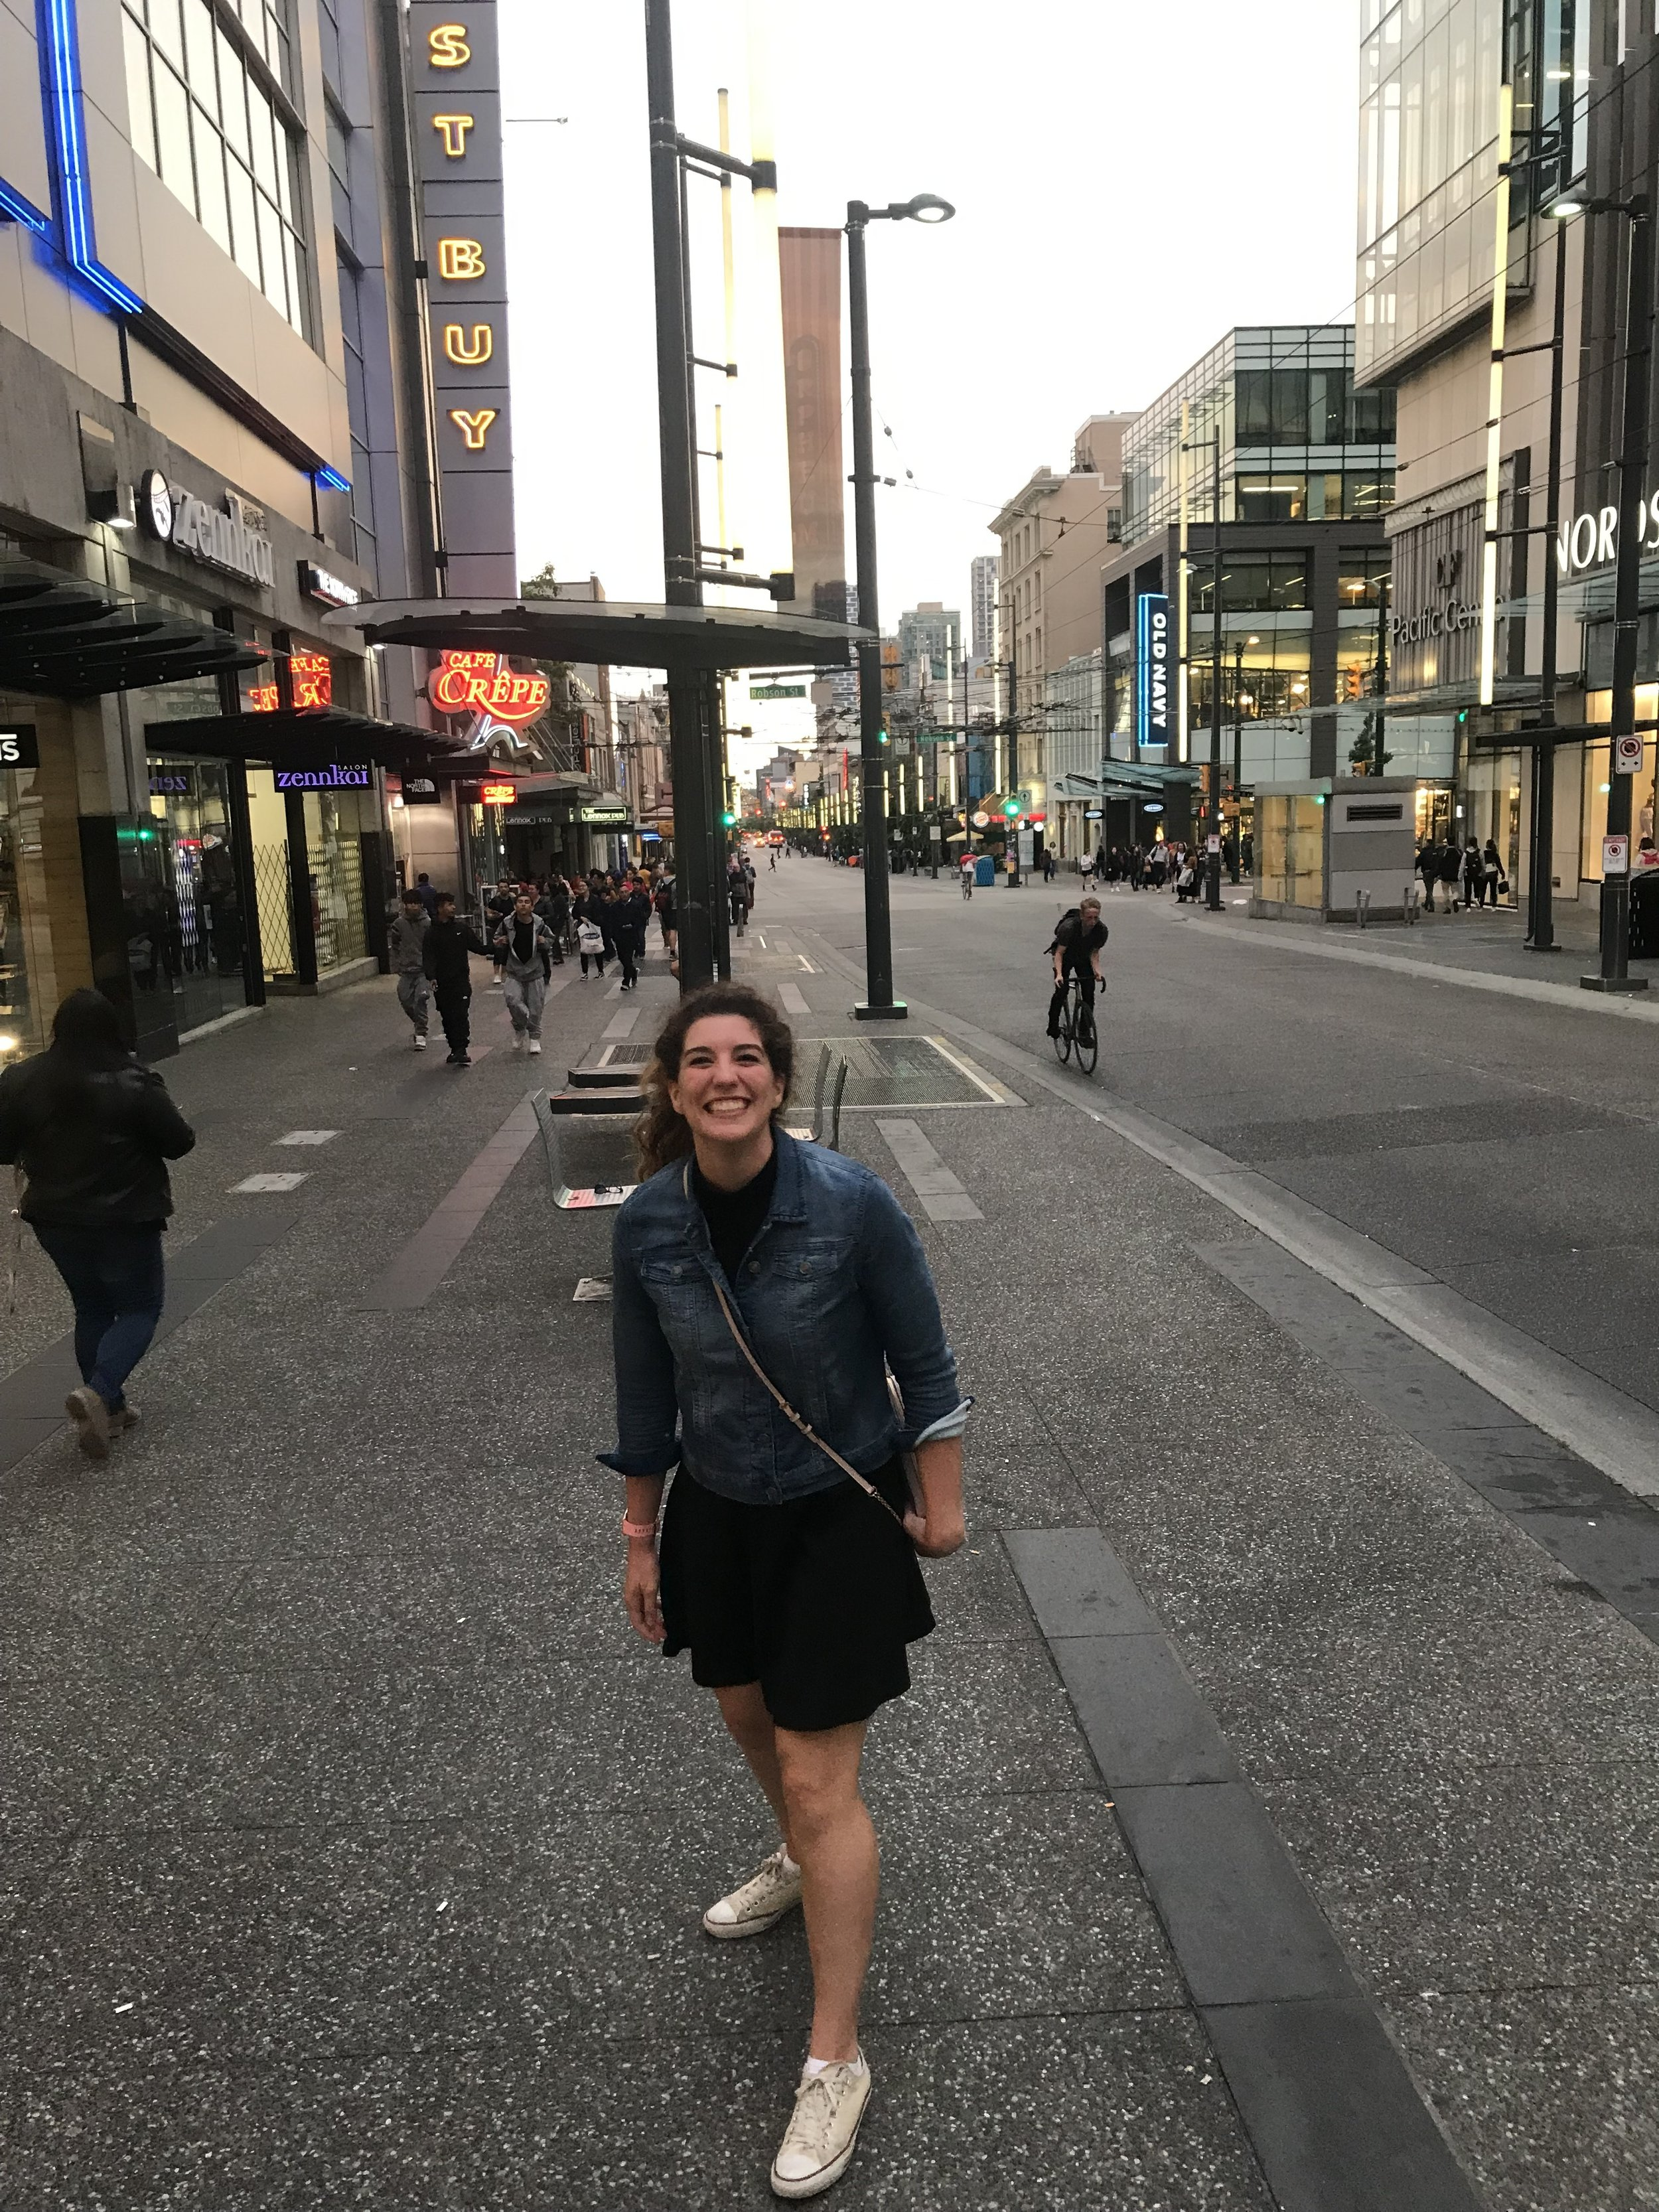 Amanda adventuring while attending the AADR/IADR 2019 Conference in Vancouver, Canada